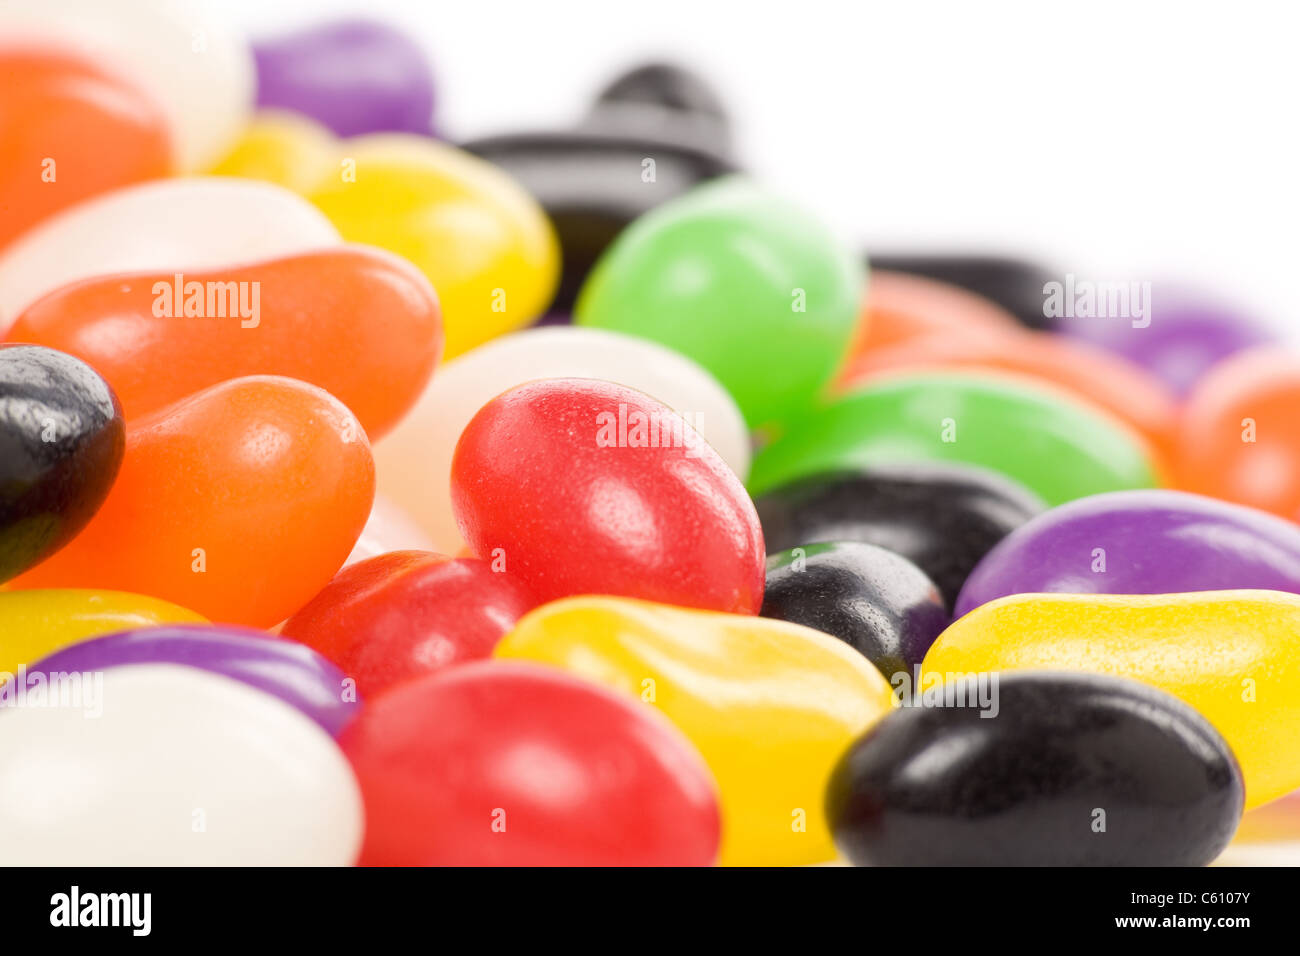 Colorful jellybeans close up shot - Stock Image